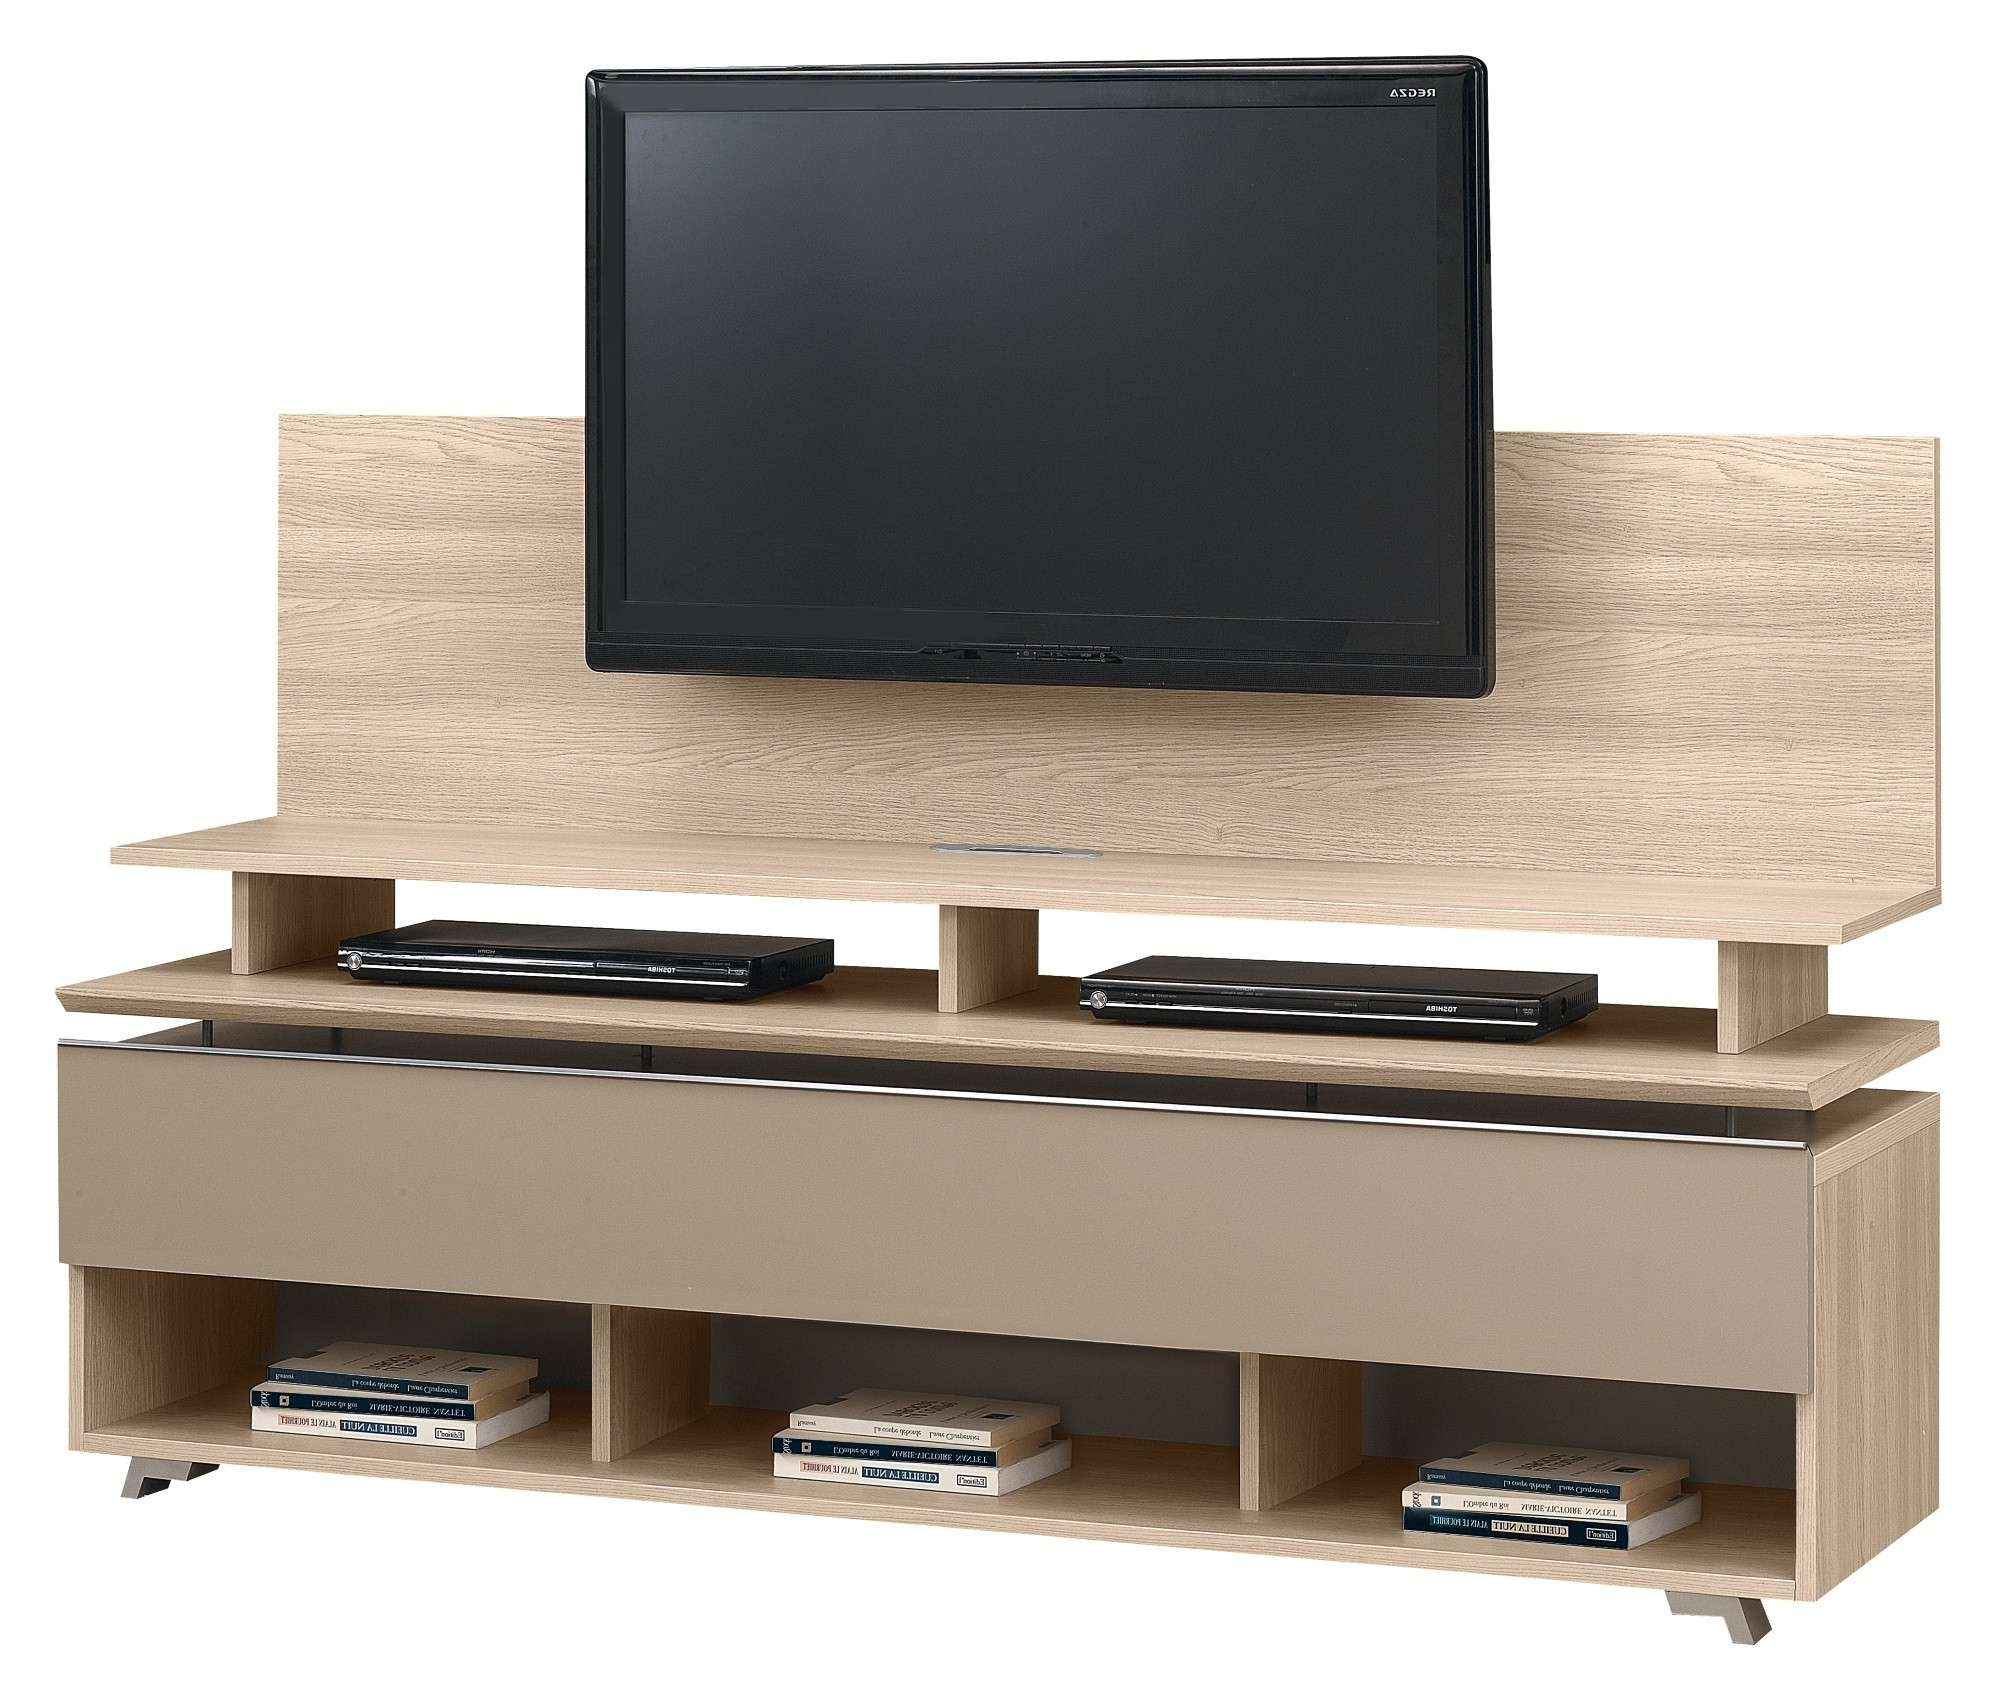 Artigo Light Oak Tv Unit + Tv Stand | Style Our Home With Regard To Light Oak Tv Cabinets (View 17 of 20)